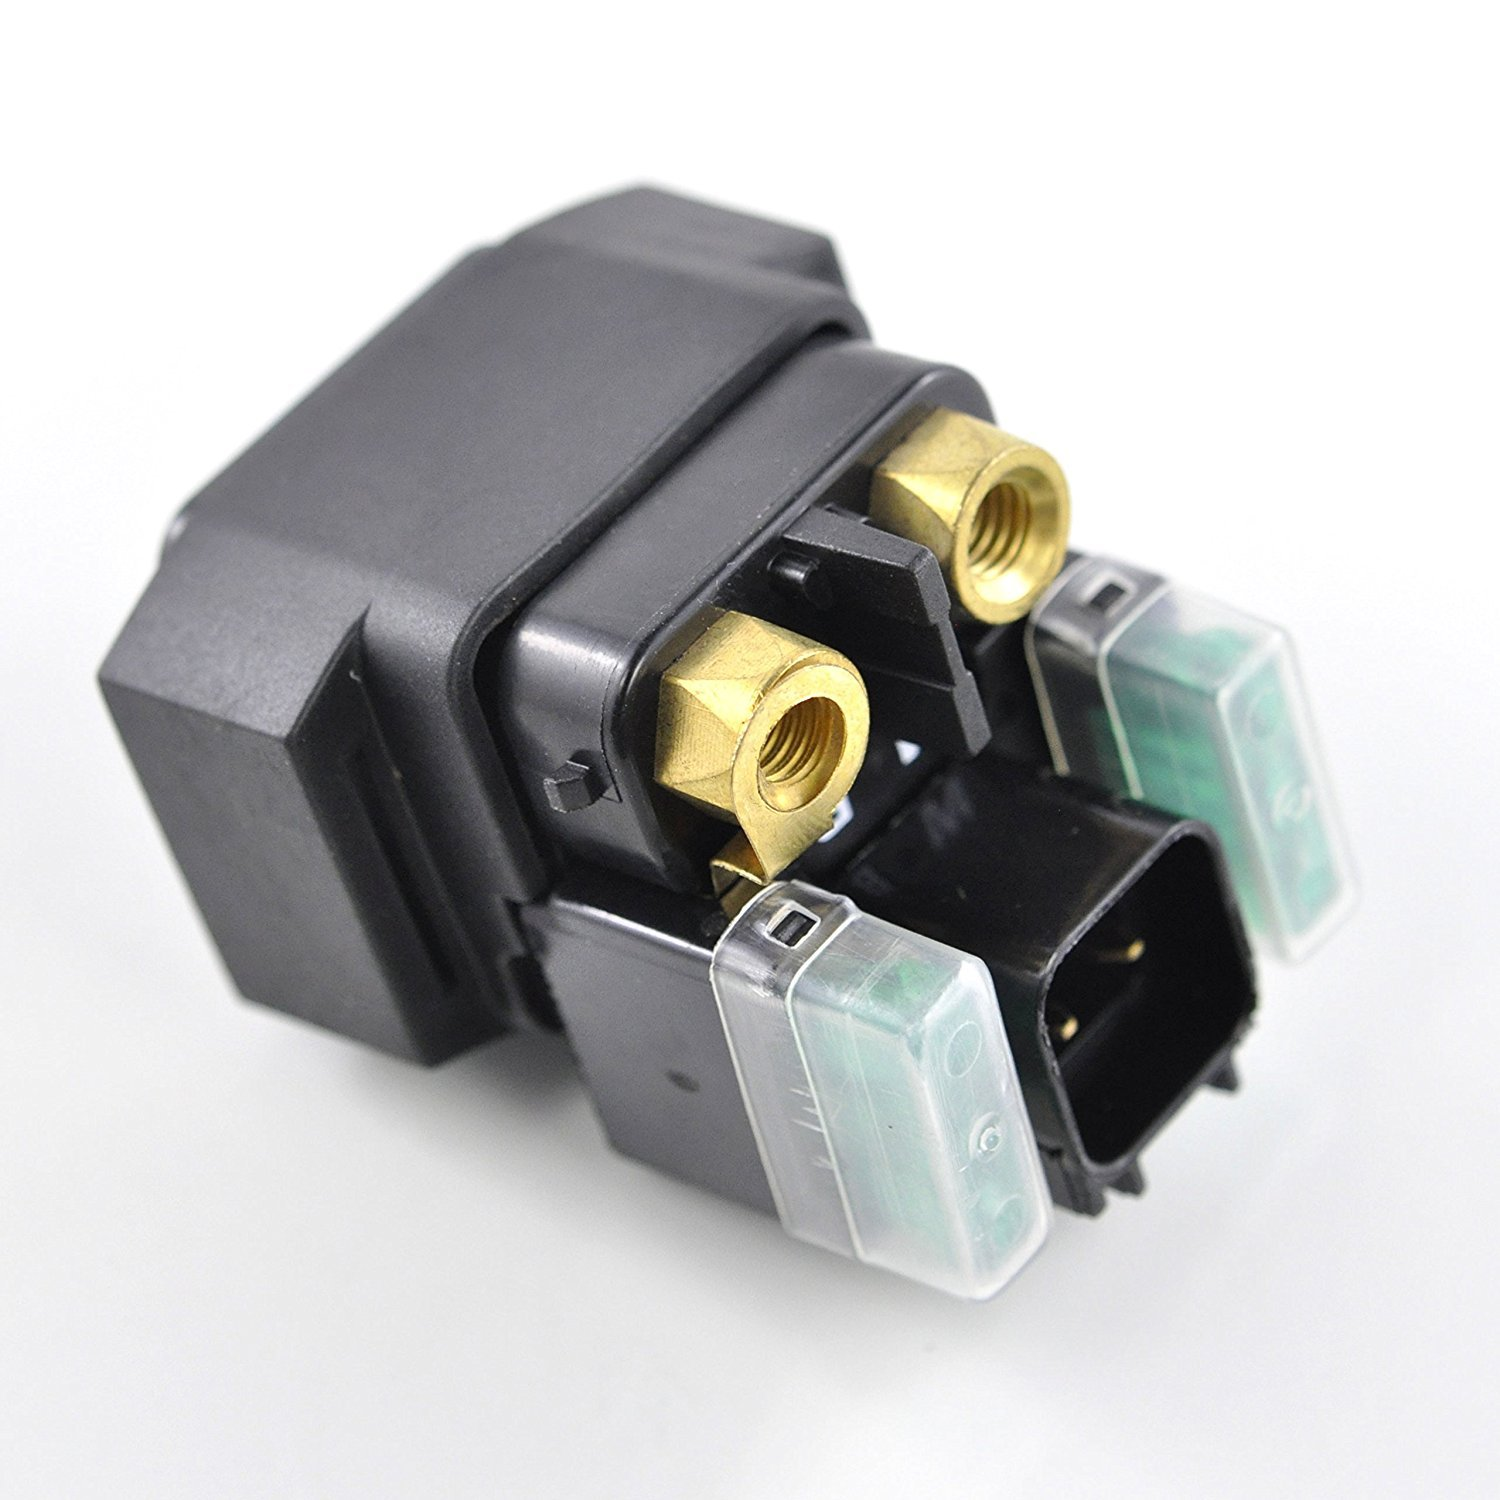 Cheap 1981 Yamaha 550 Find Deals On Line At Alibabacom Tt500 Ignition Wiring Get Quotations Starter Relay Solenoid For Yfz 450 R X Yfm 700 Grizzly Raptor 2006 2017